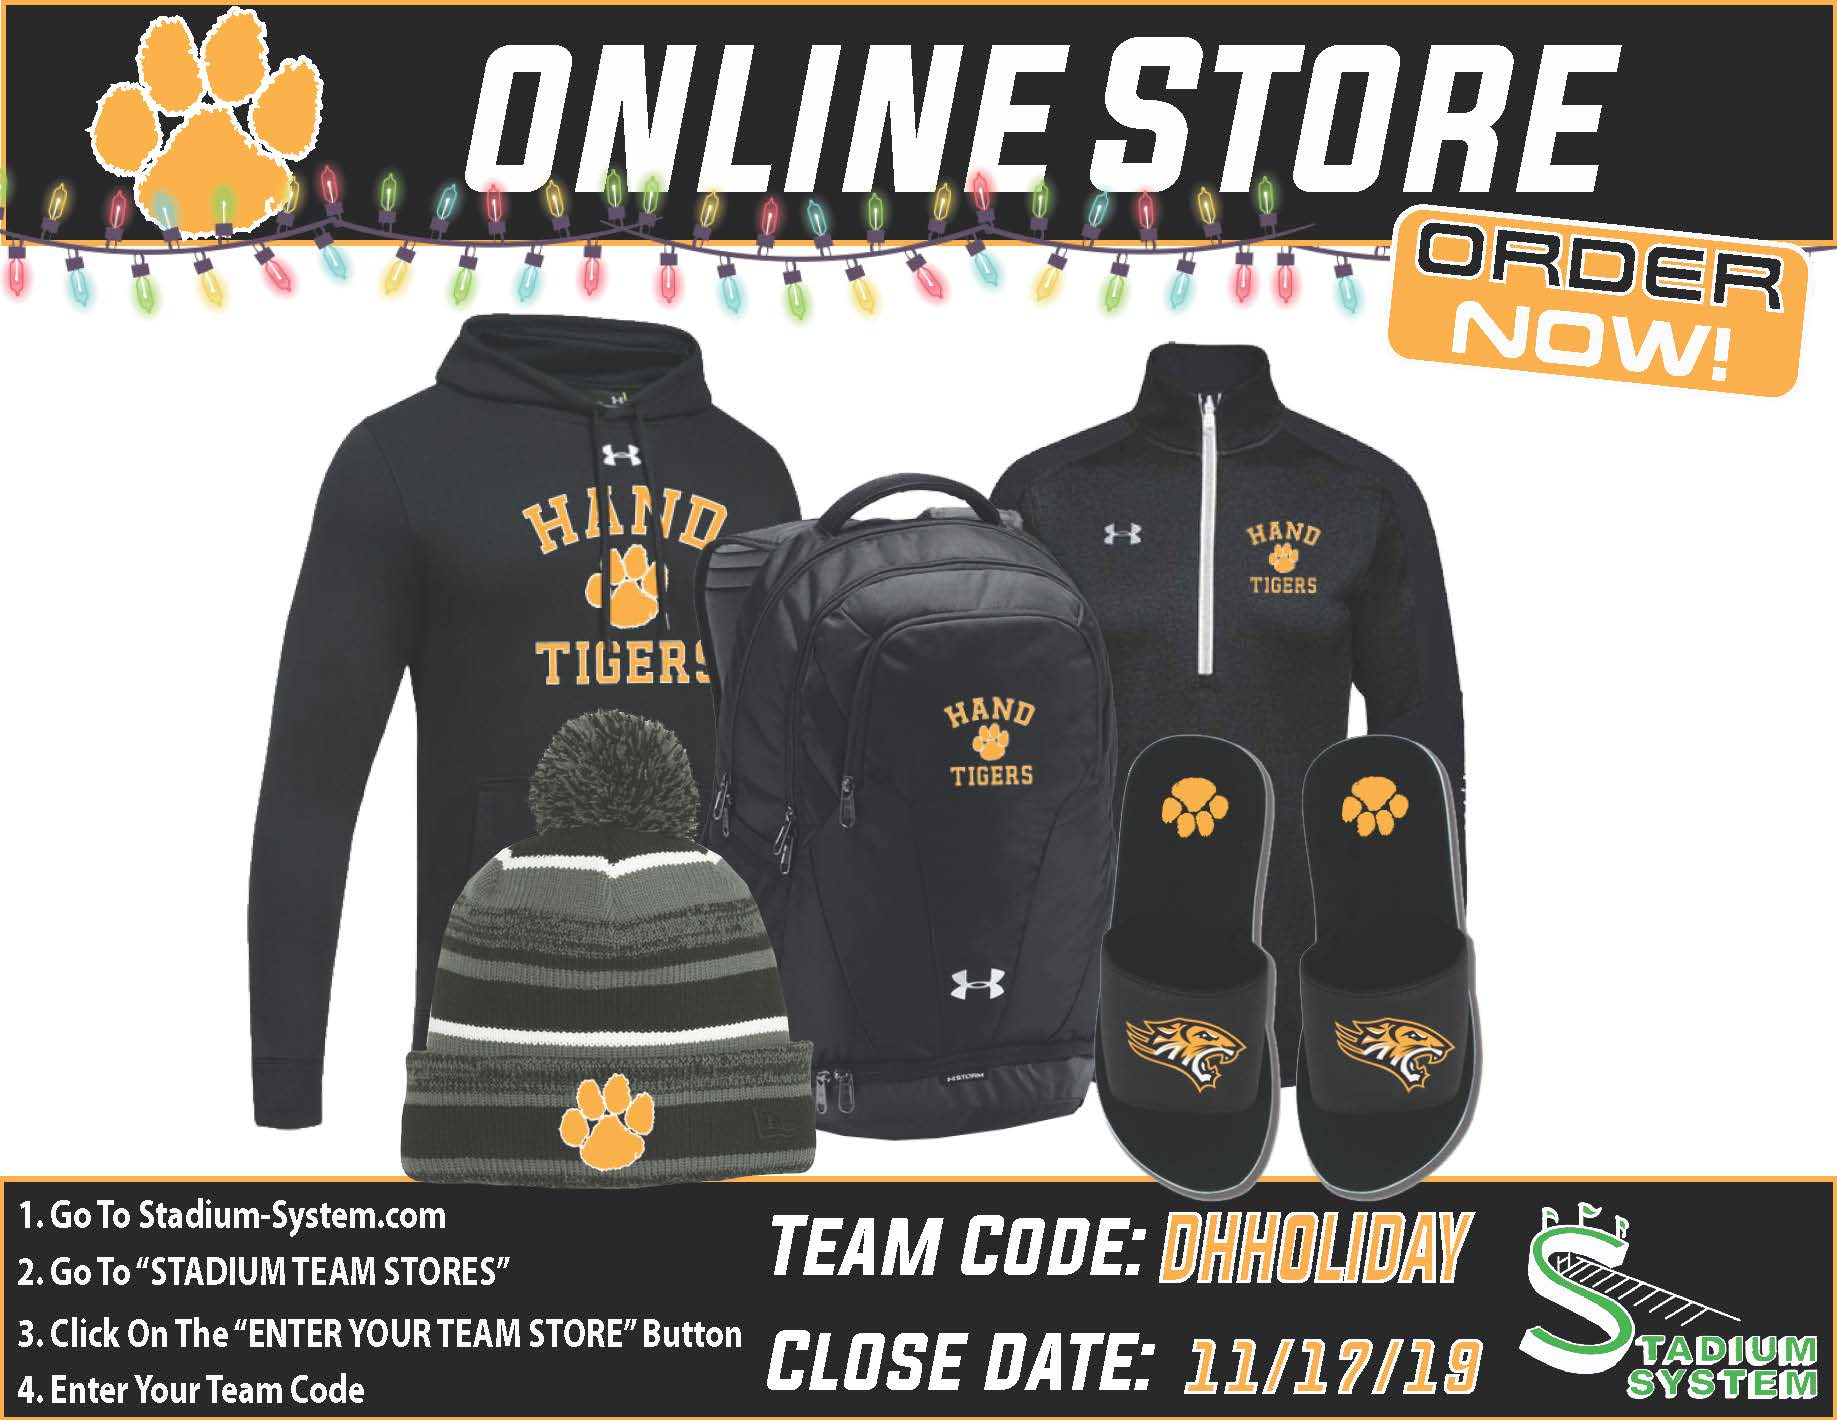 Online store for DHHS Apparel. Code DHHOLIDAY